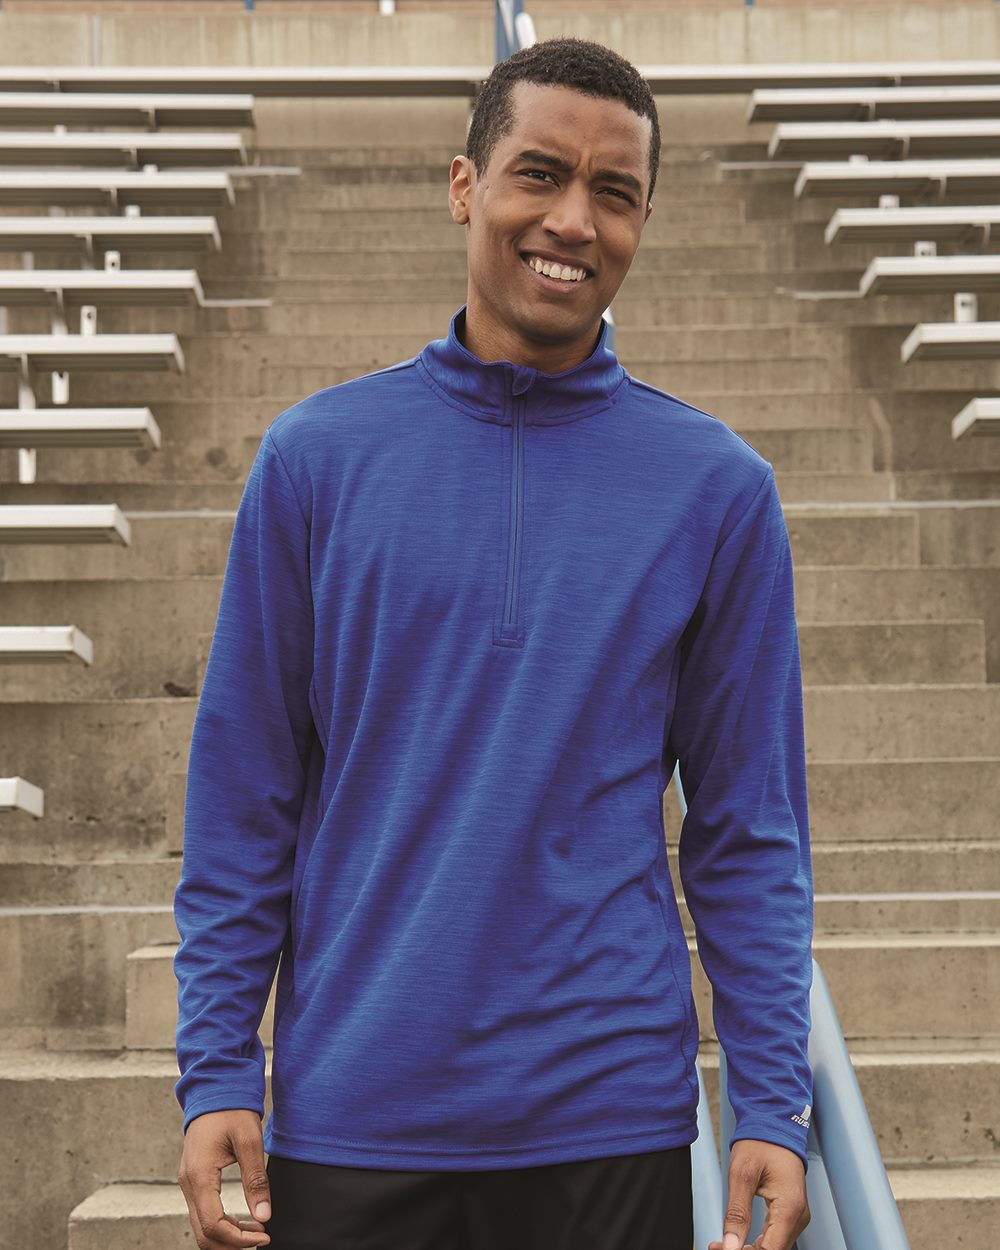 Russell Athletic QZ7EAM - Men's Striated Quarter-Zip Pullover